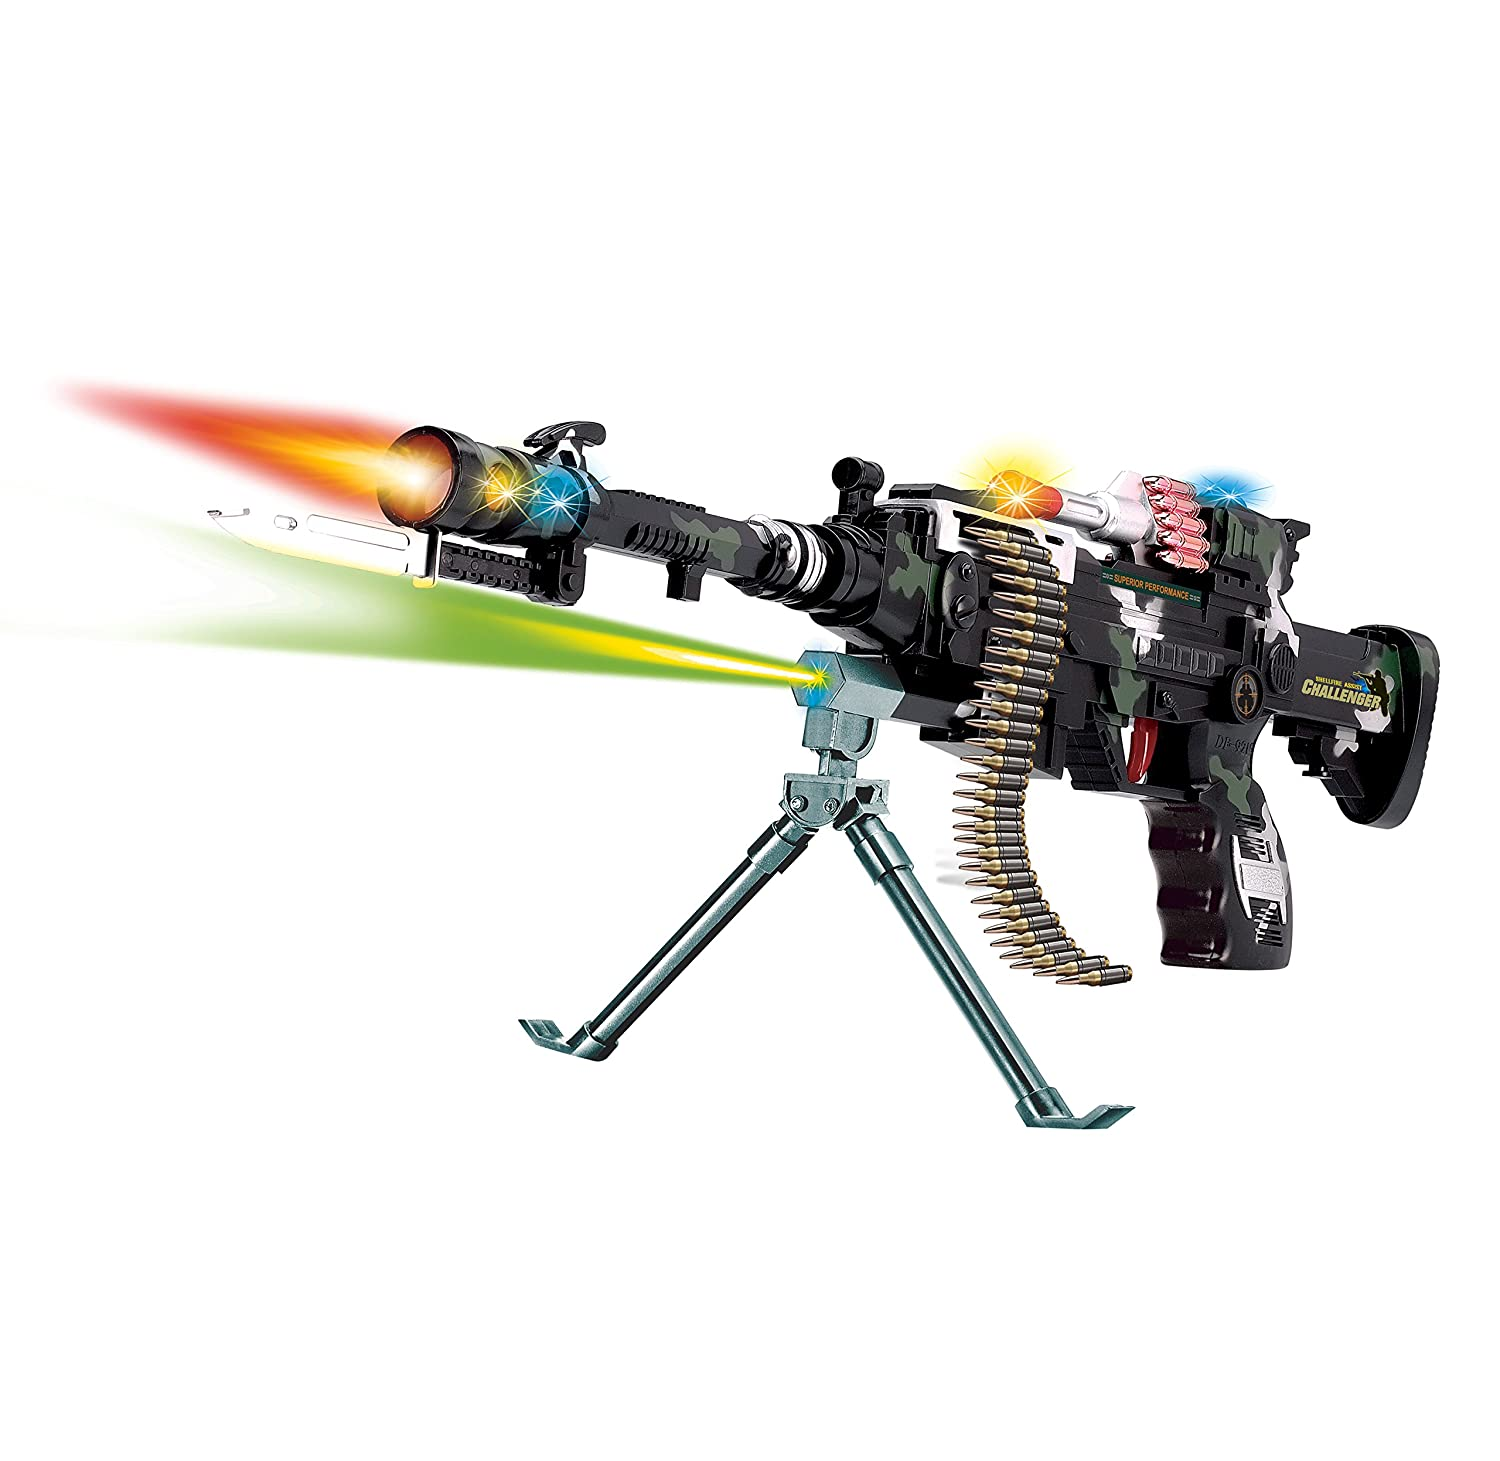 22 inch Rapid Fire Machine Combat 3 Gun with Lights and Sound Fatherland Shop DF-8218B